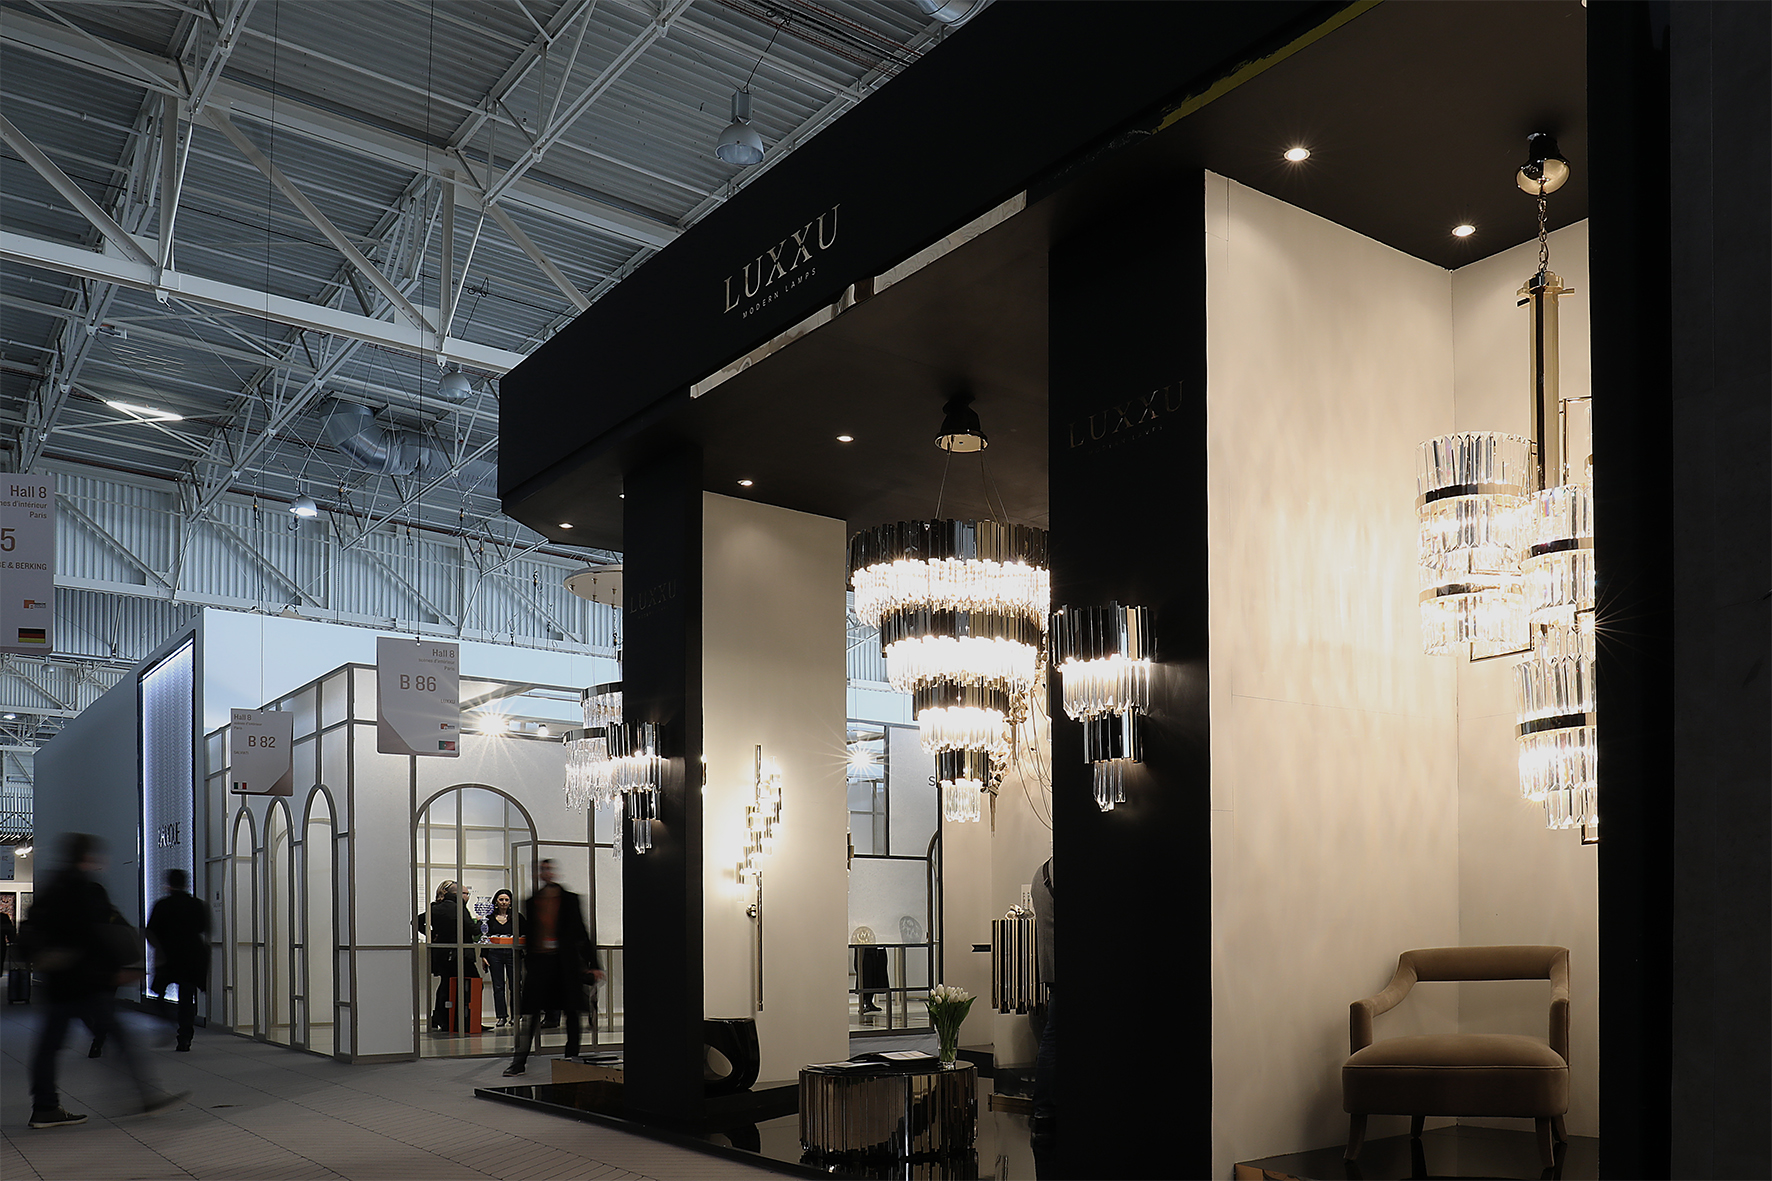 What to Expect From LUXXU at Maison et Objet 2017